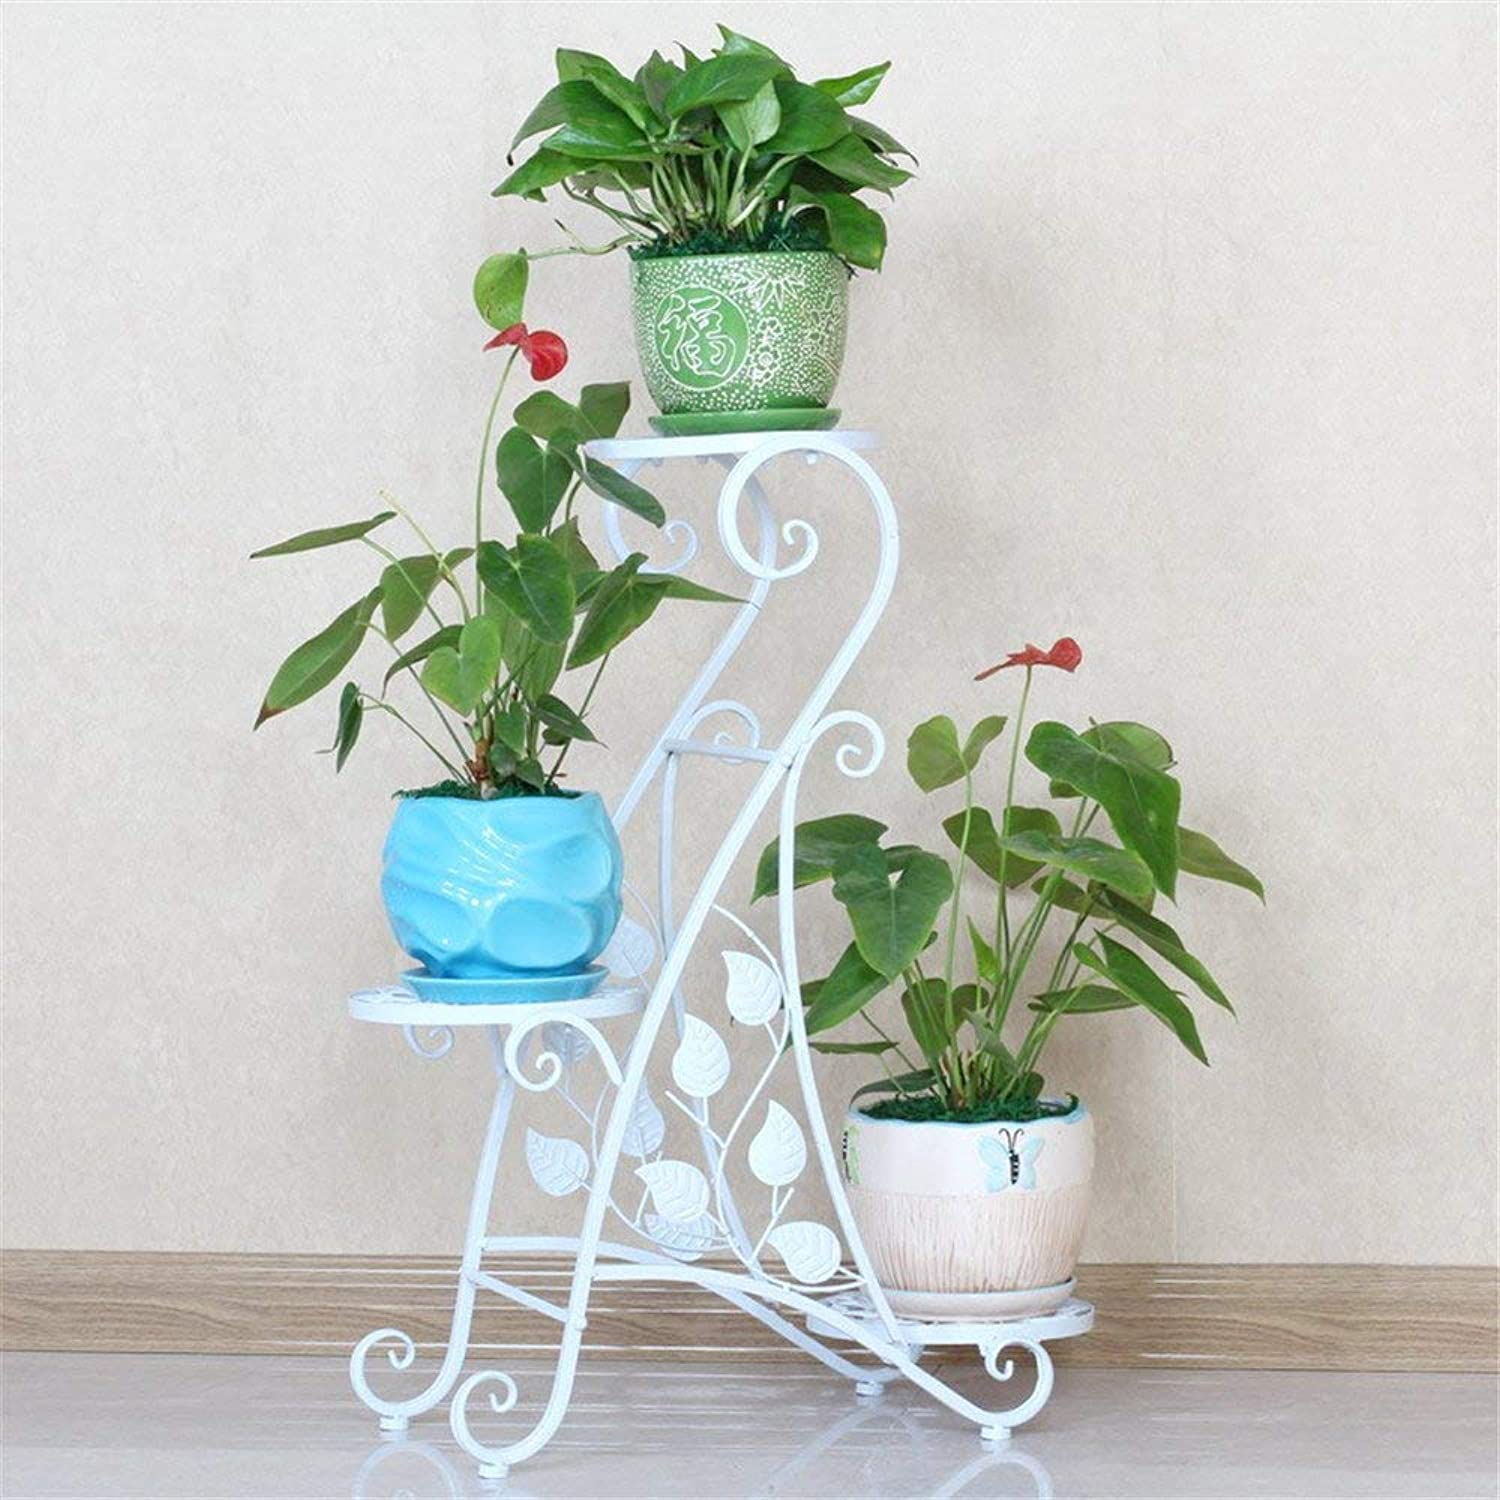 Gifts & Decor Plant Stand Shelf Multi-Storey Terrace Living Room With Three Layers Of Steel Plant Multifunctional Flower Display Stands Wood Pot Shelf Storage Rack Outdoor Indoor Pots Holder Thanksgiv